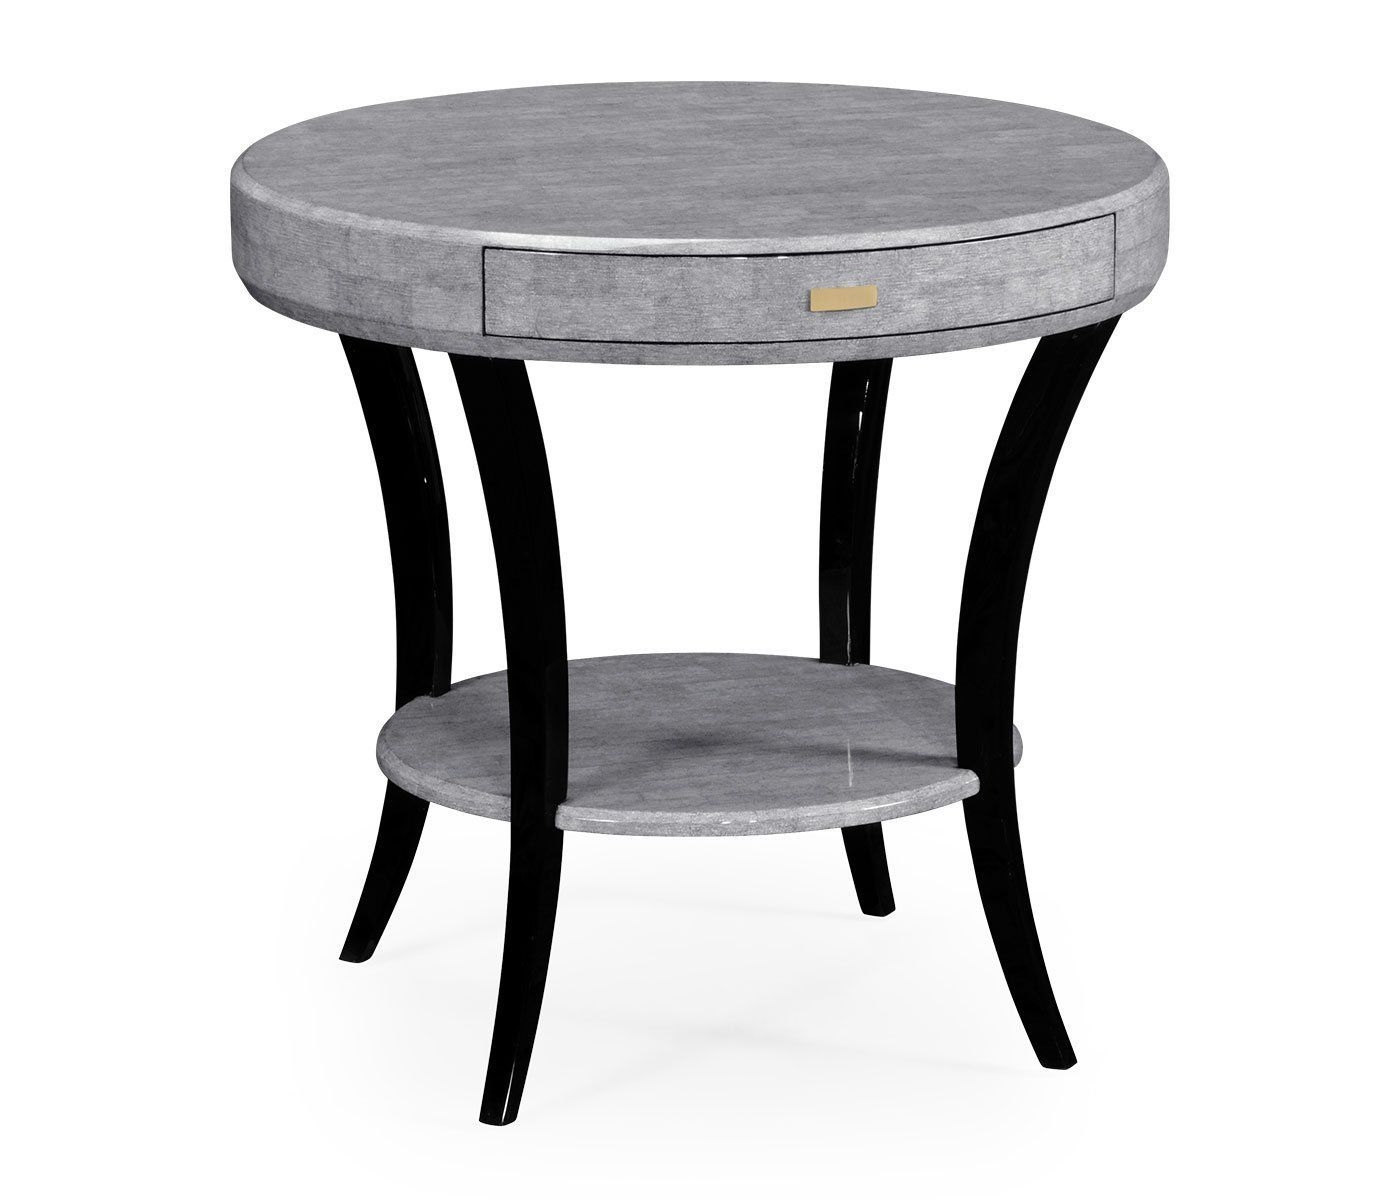 Jonathan Charles White Smoke Eggshell Inlay Round Side Table With Drawer 494000 Ec001 Round Side Table End Tables With Storage Side Table With Drawer